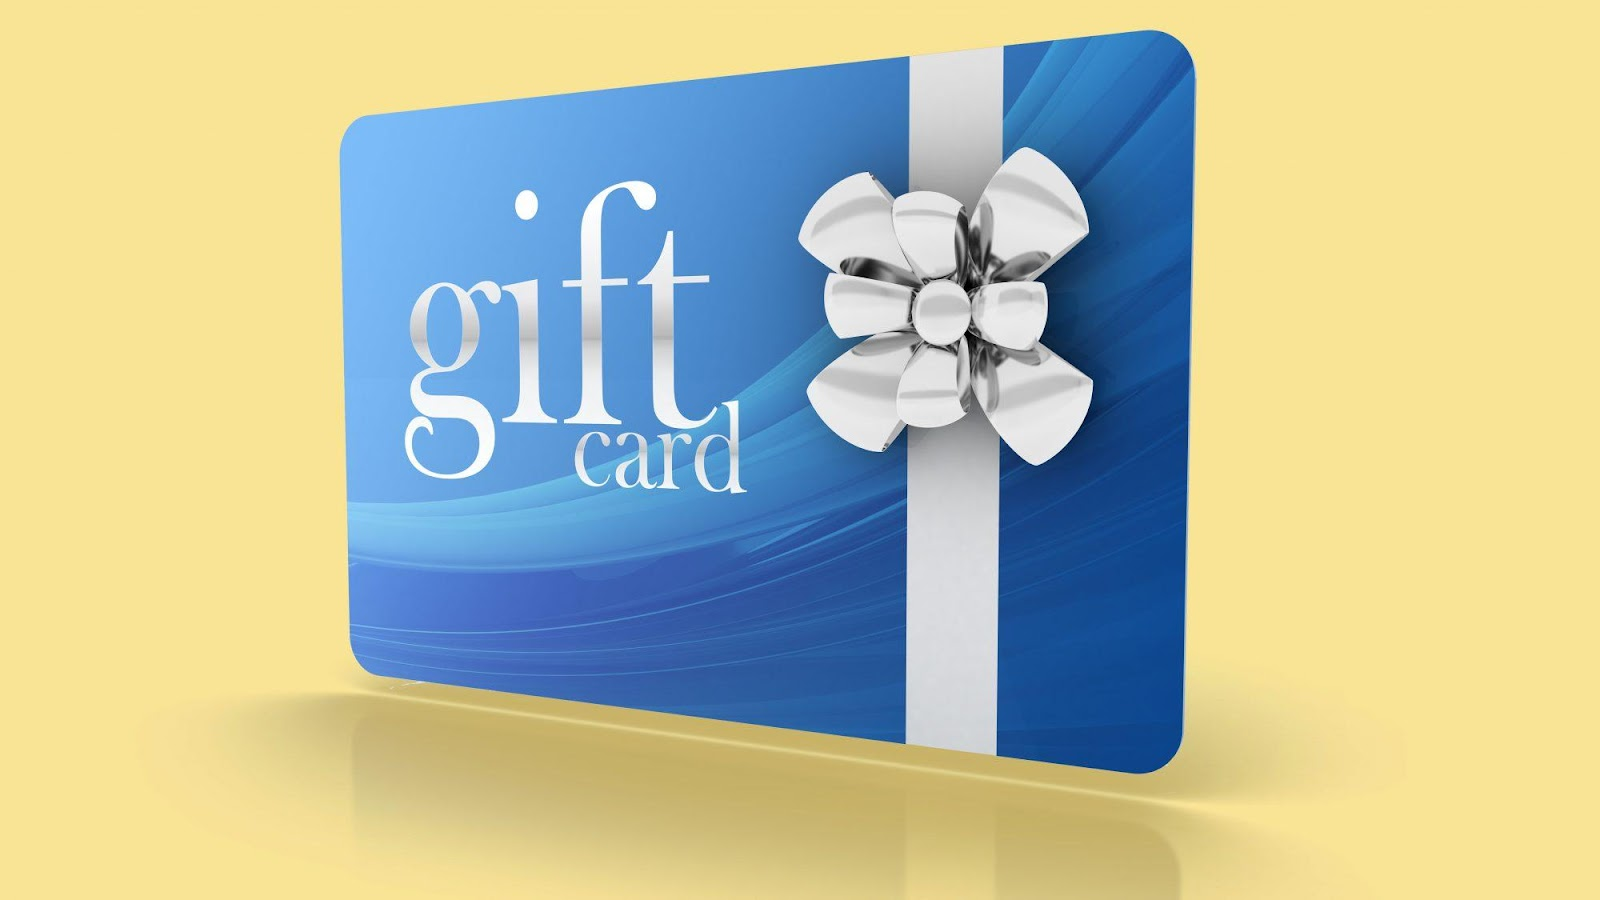 The Best Gift Card Ideas for Christmas, Birthdays, and More | Real Simple